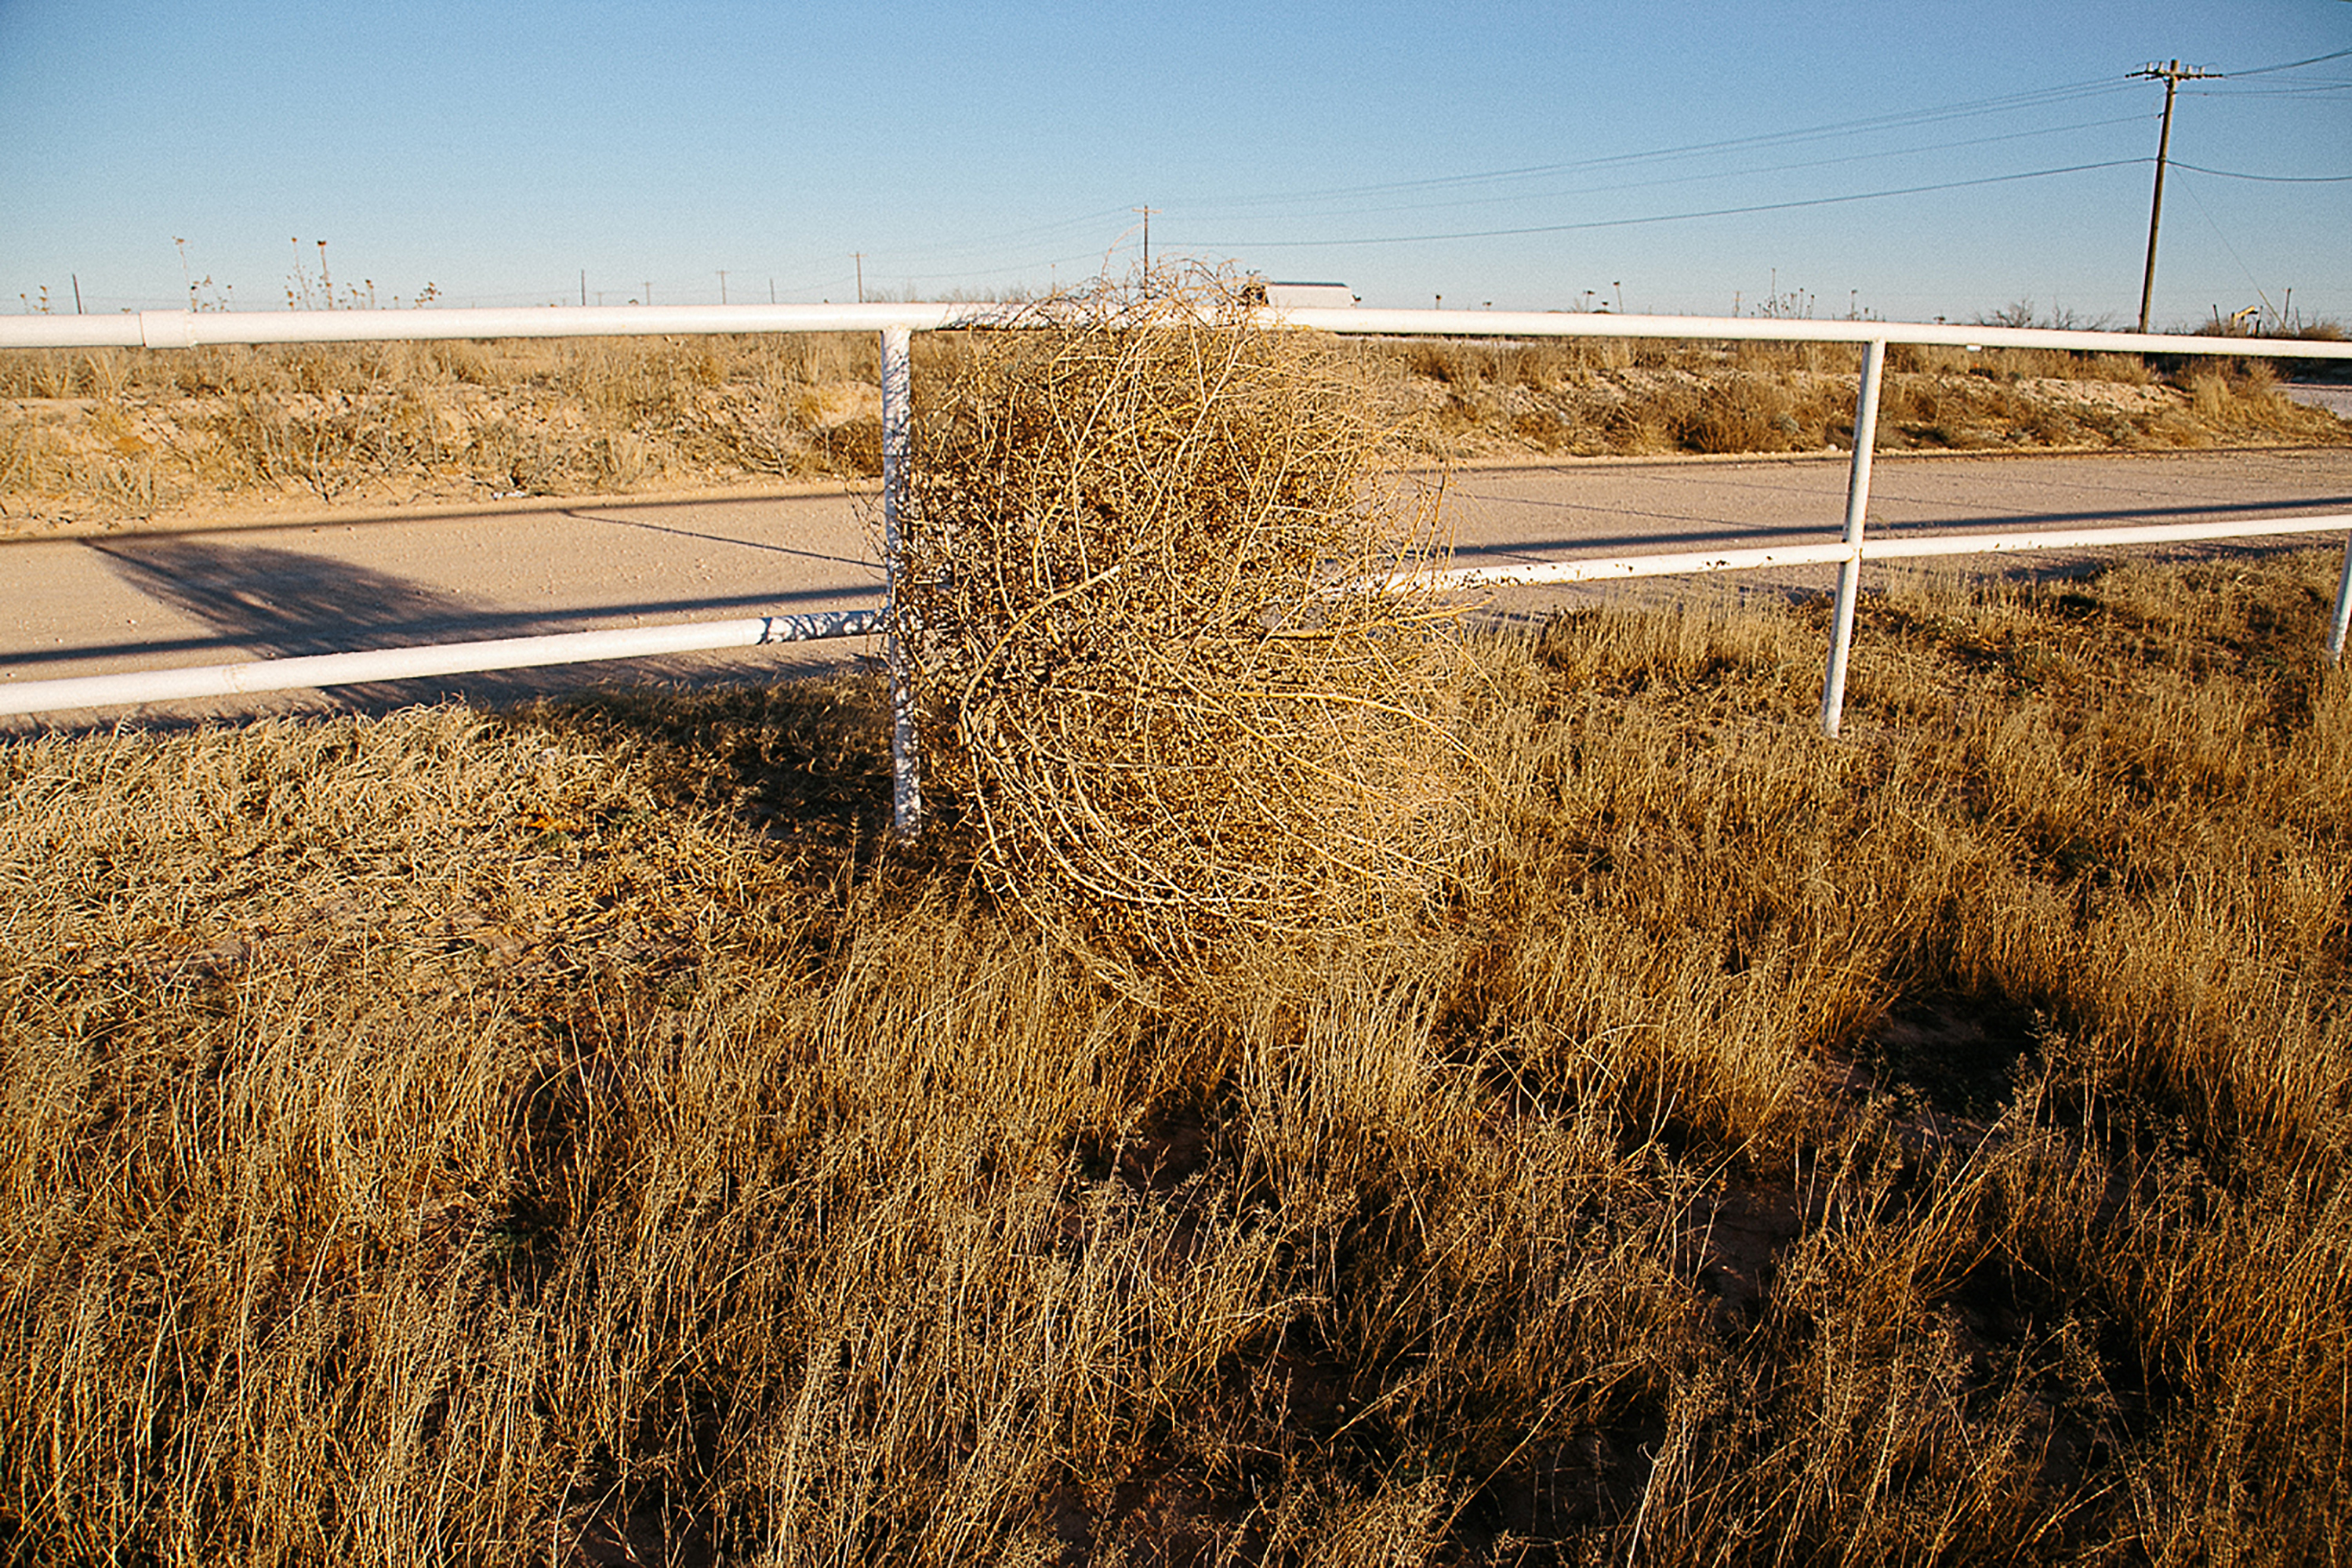 Big tumble weed by a white fence